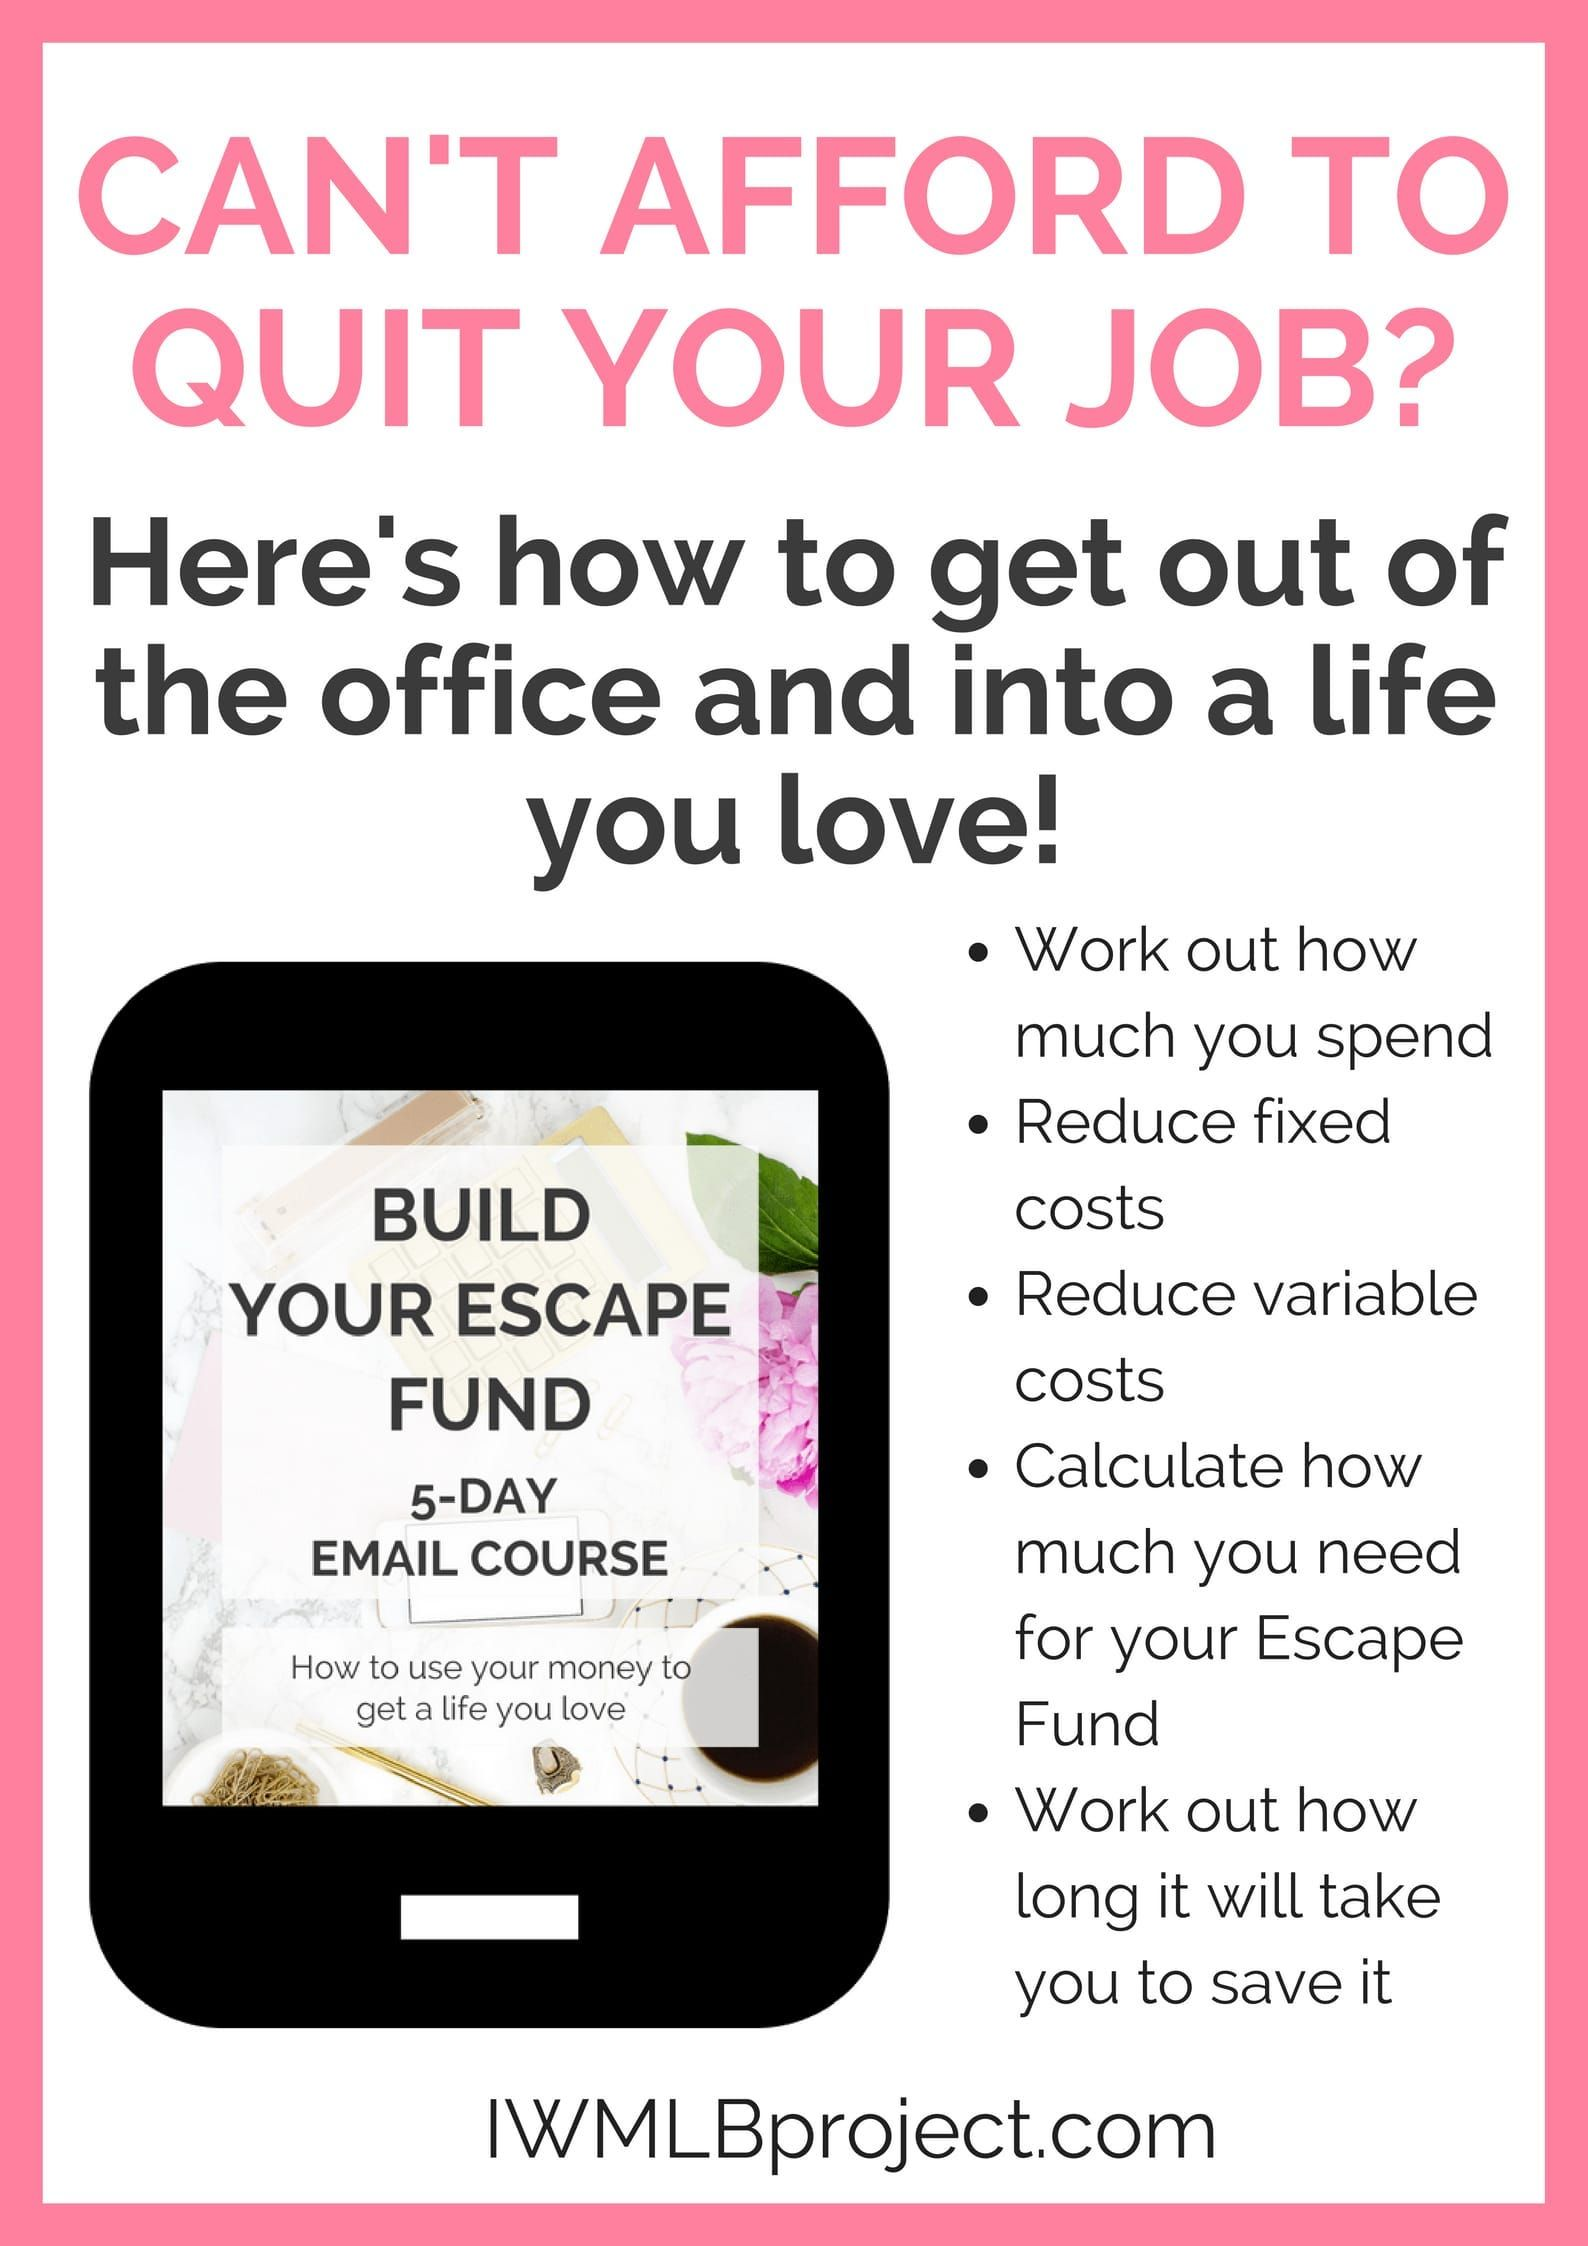 Can't afford to quit your job but really want to leave